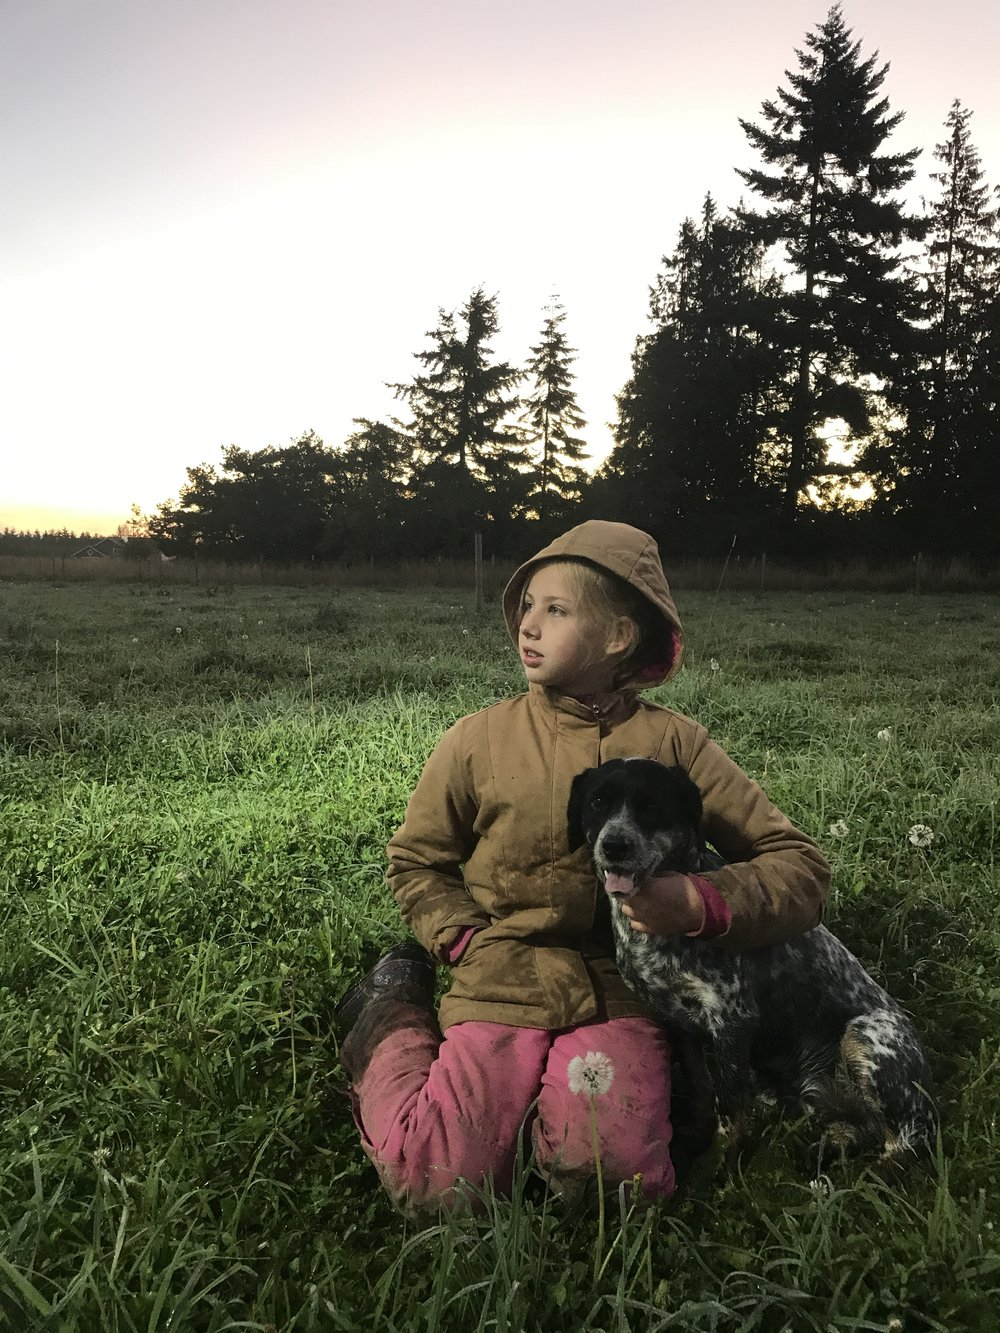 at sunrise with her dog at her side, libby watches the skilled work being done on butcher day.